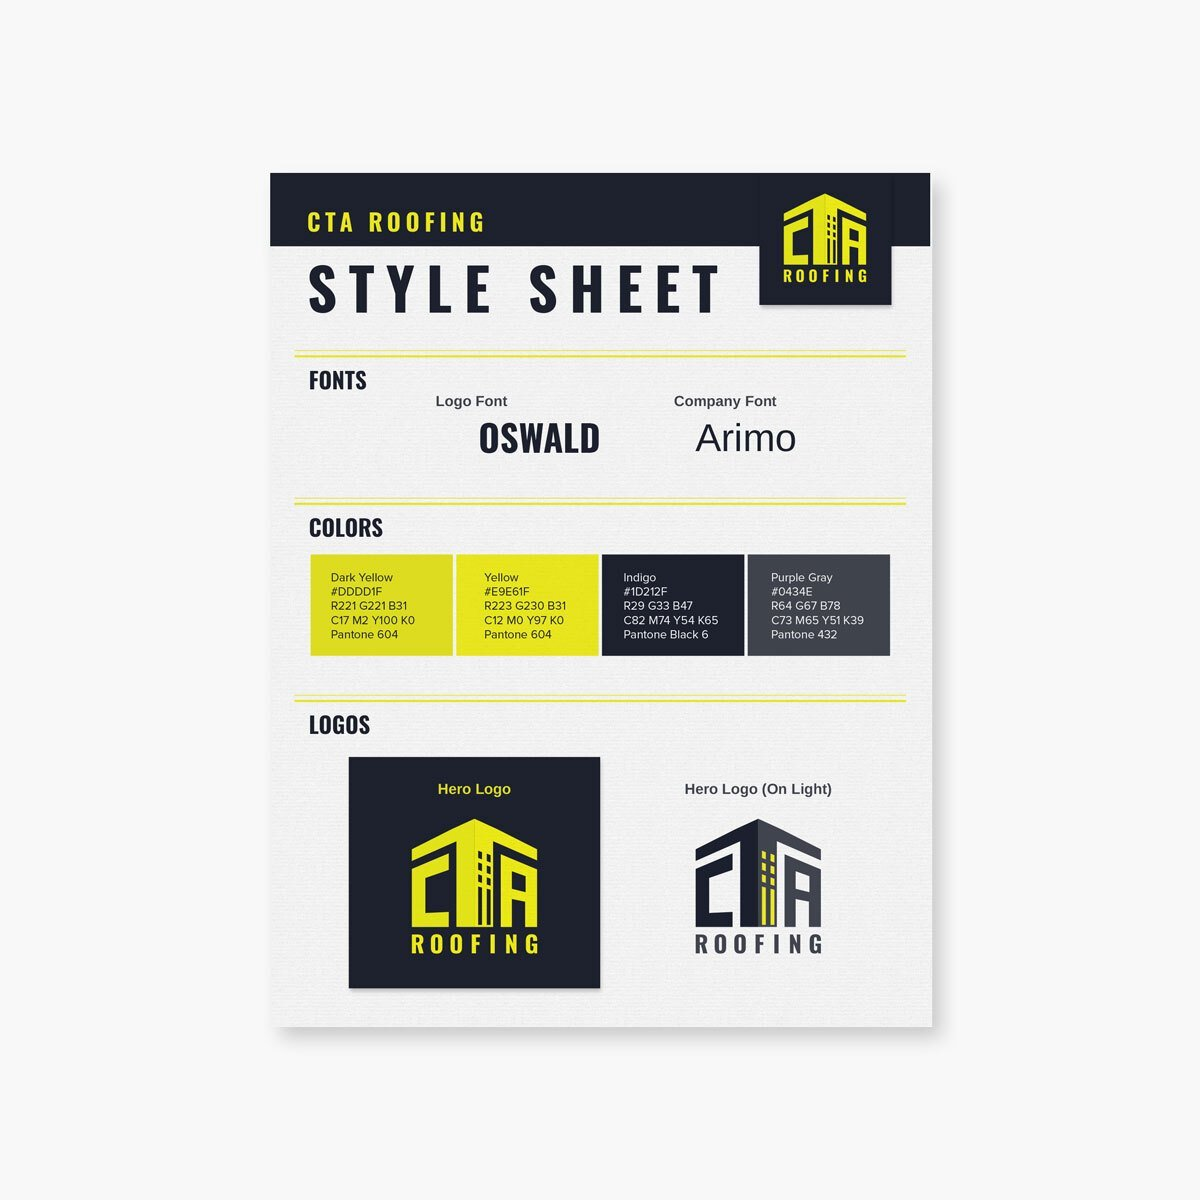 Roofing company style sheet from BrandSwan, a Delaware branding agency